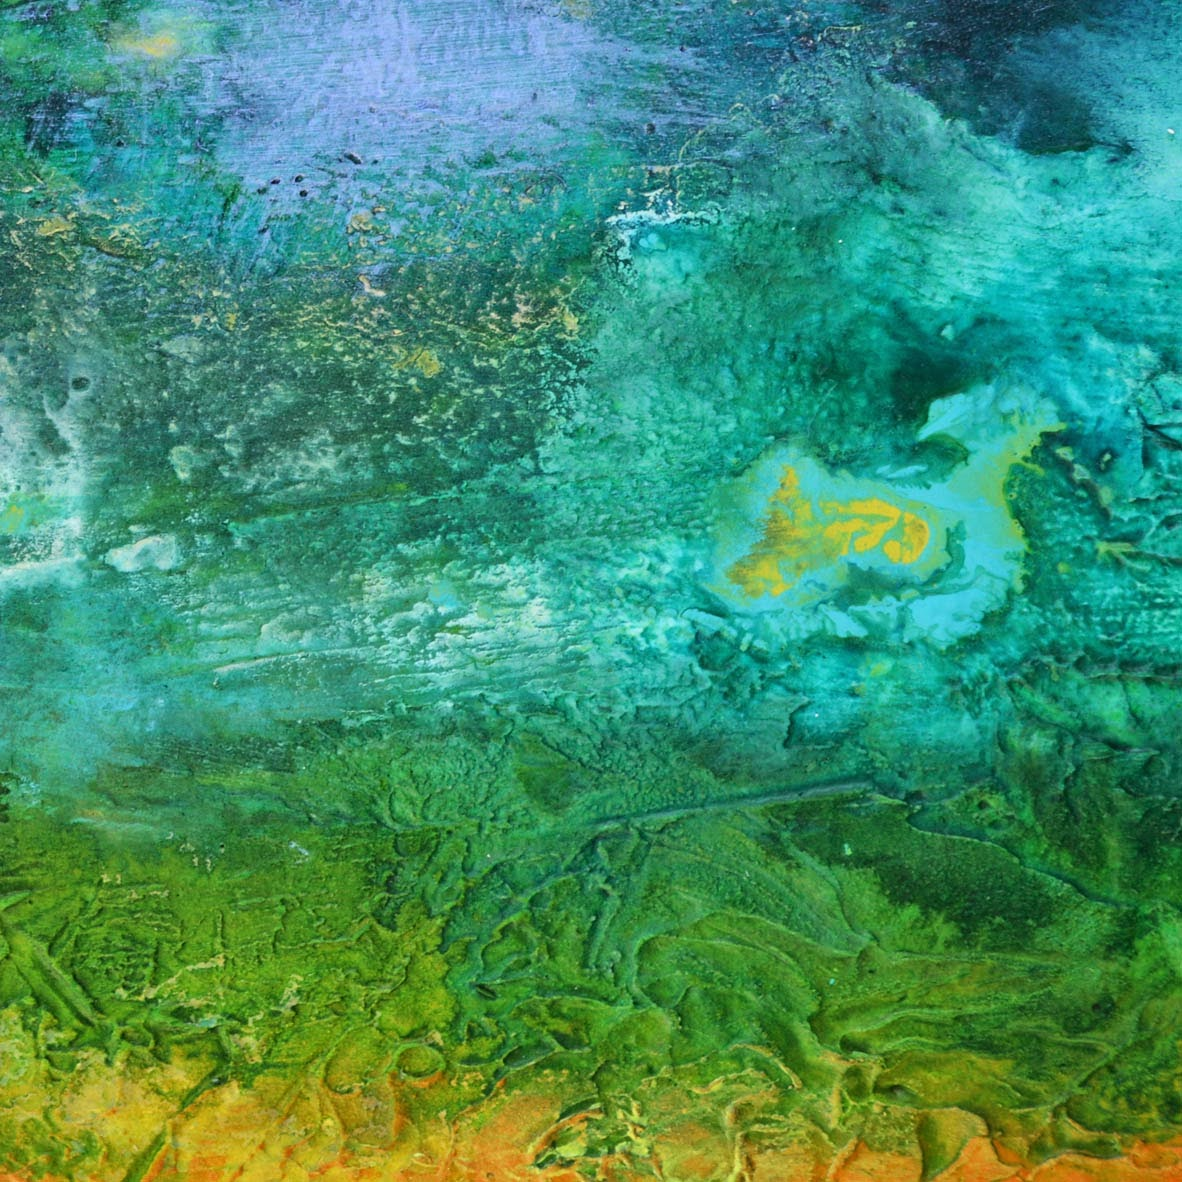 https://www.etsy.com/listing/193340901/large-abstract-painting-landscape-beach?ref=shop_home_active_1